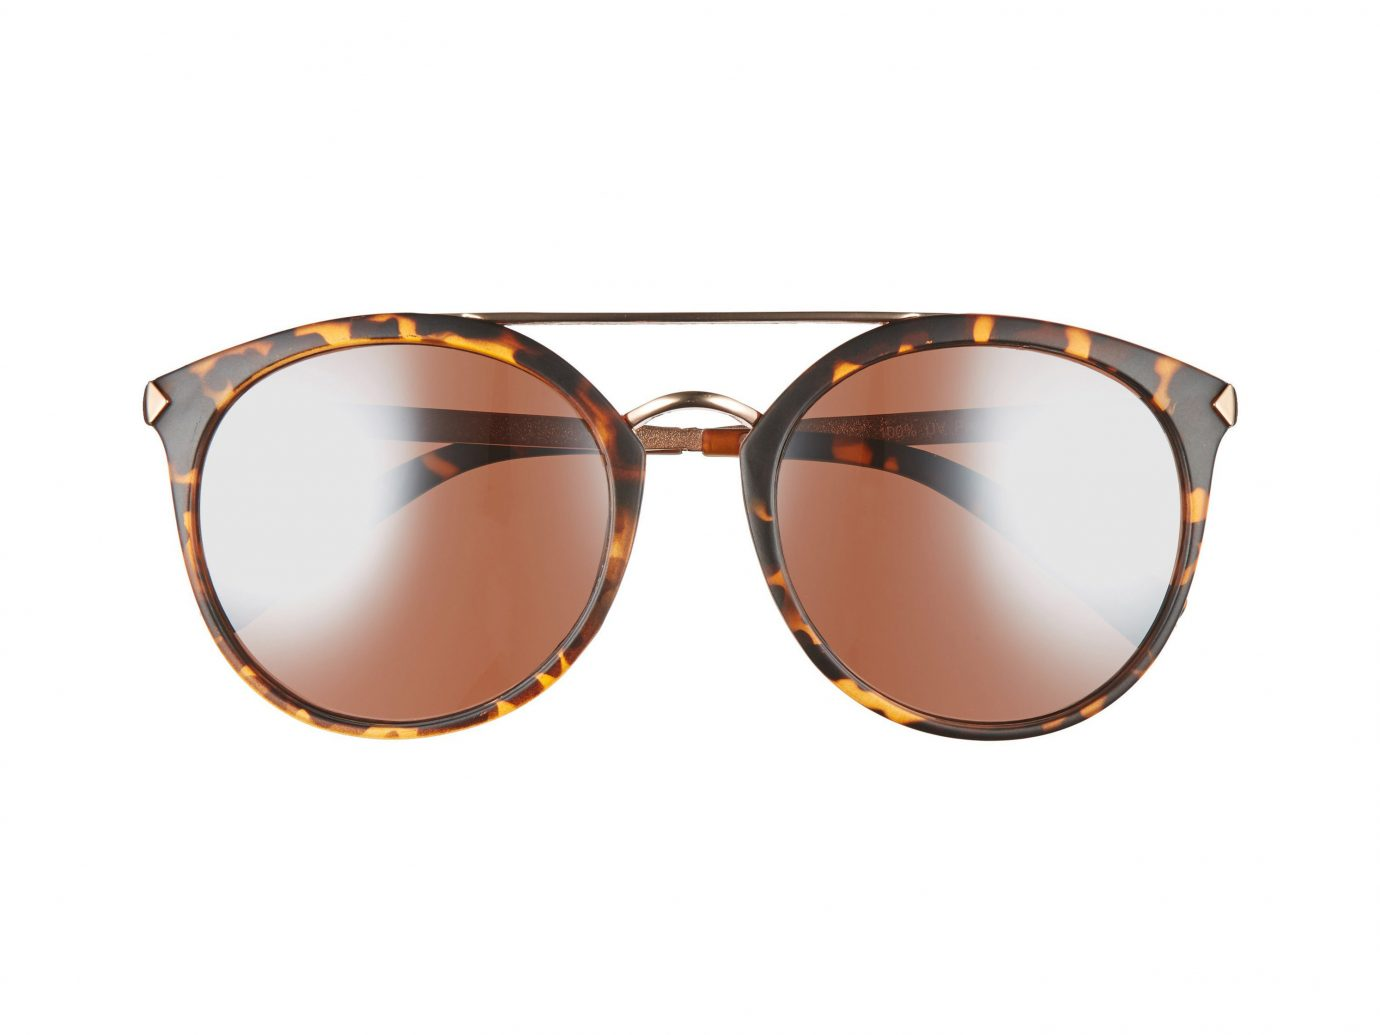 Spring Travel Style + Design Summer Travel Travel Shop eyewear spectacles sunglasses vision care brown glasses accessory mirror goggles product product design font ring